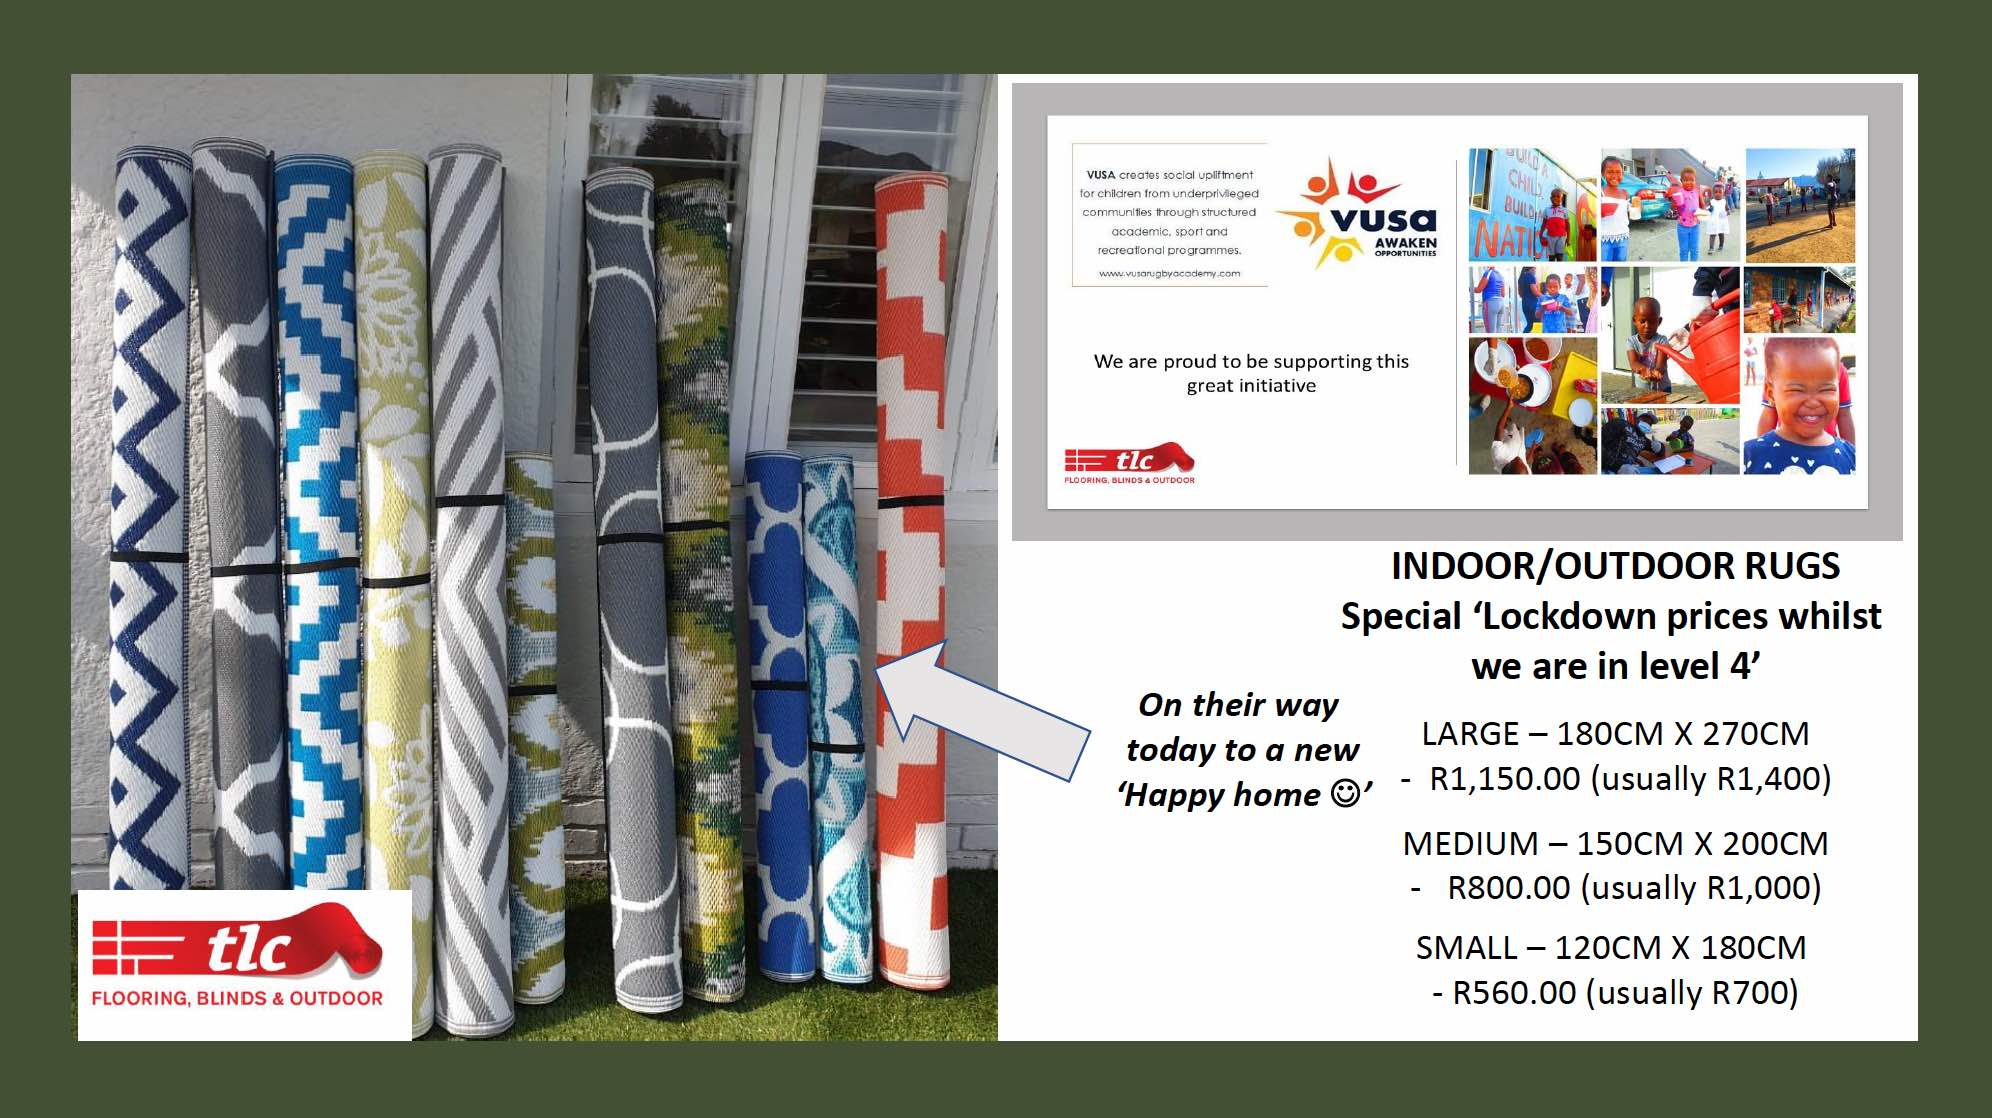 indoor outdoor rugs special lockdown prices - tlc flooring